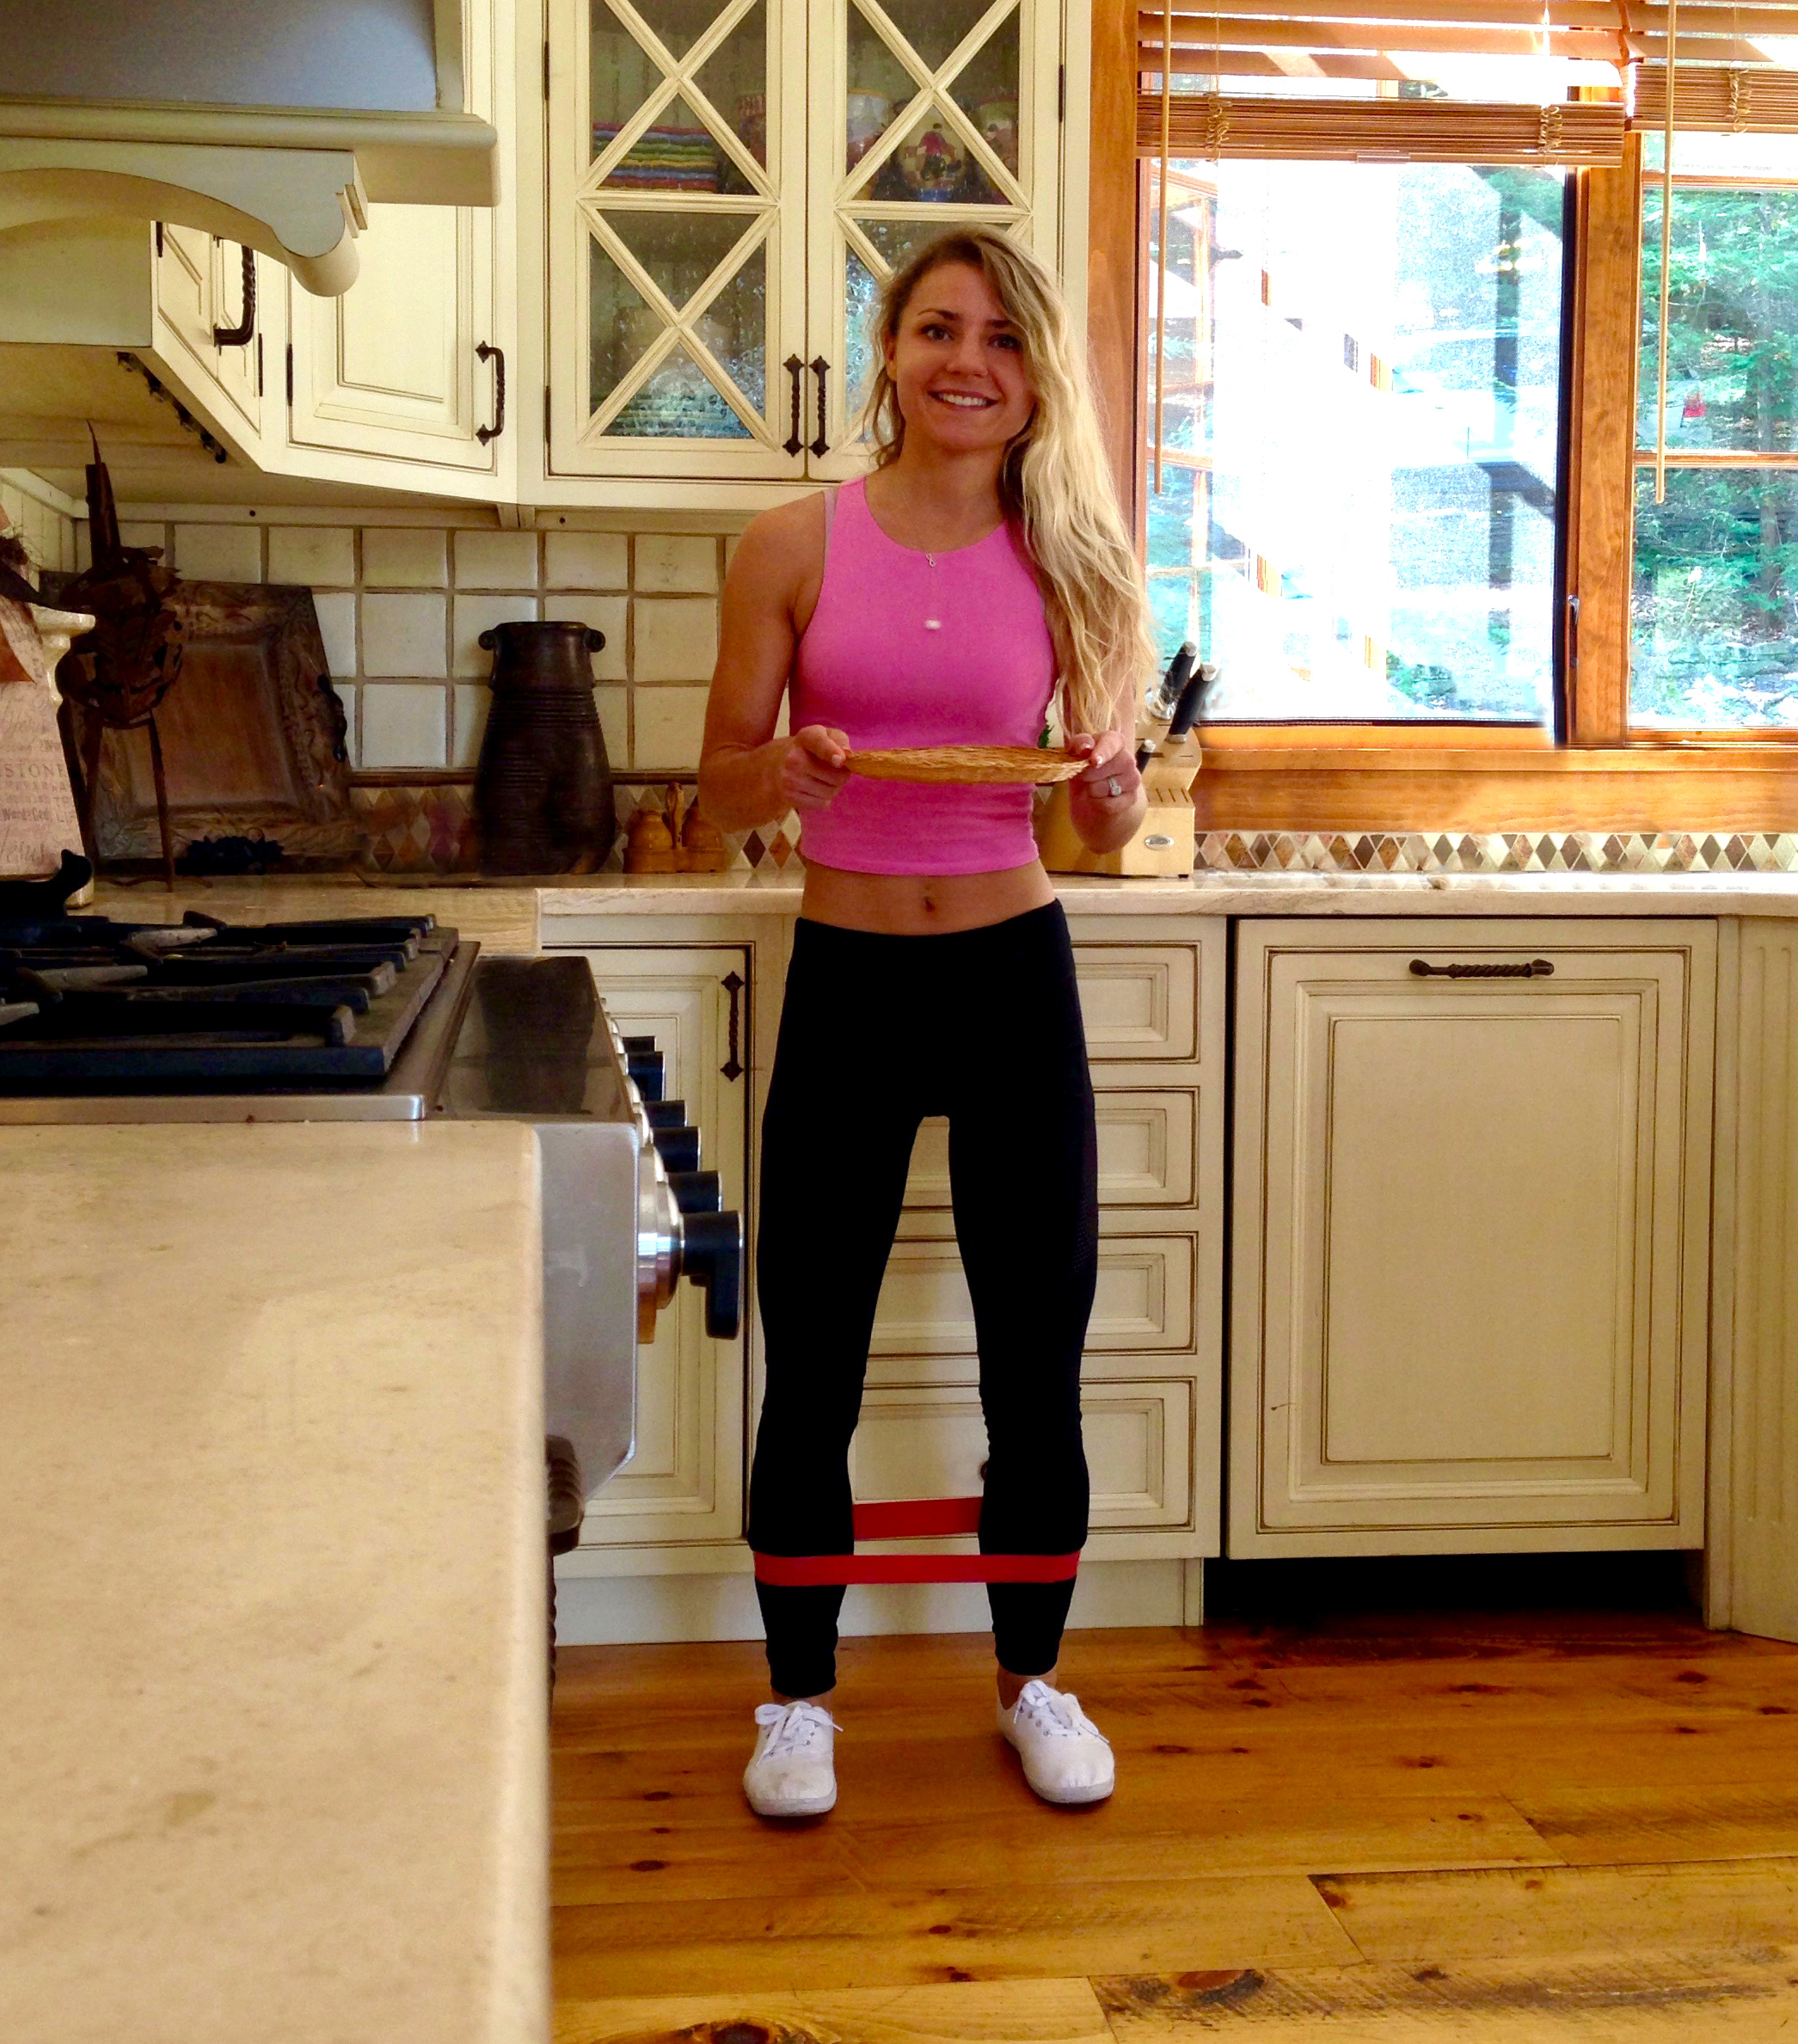 Burn calories in the kitchen